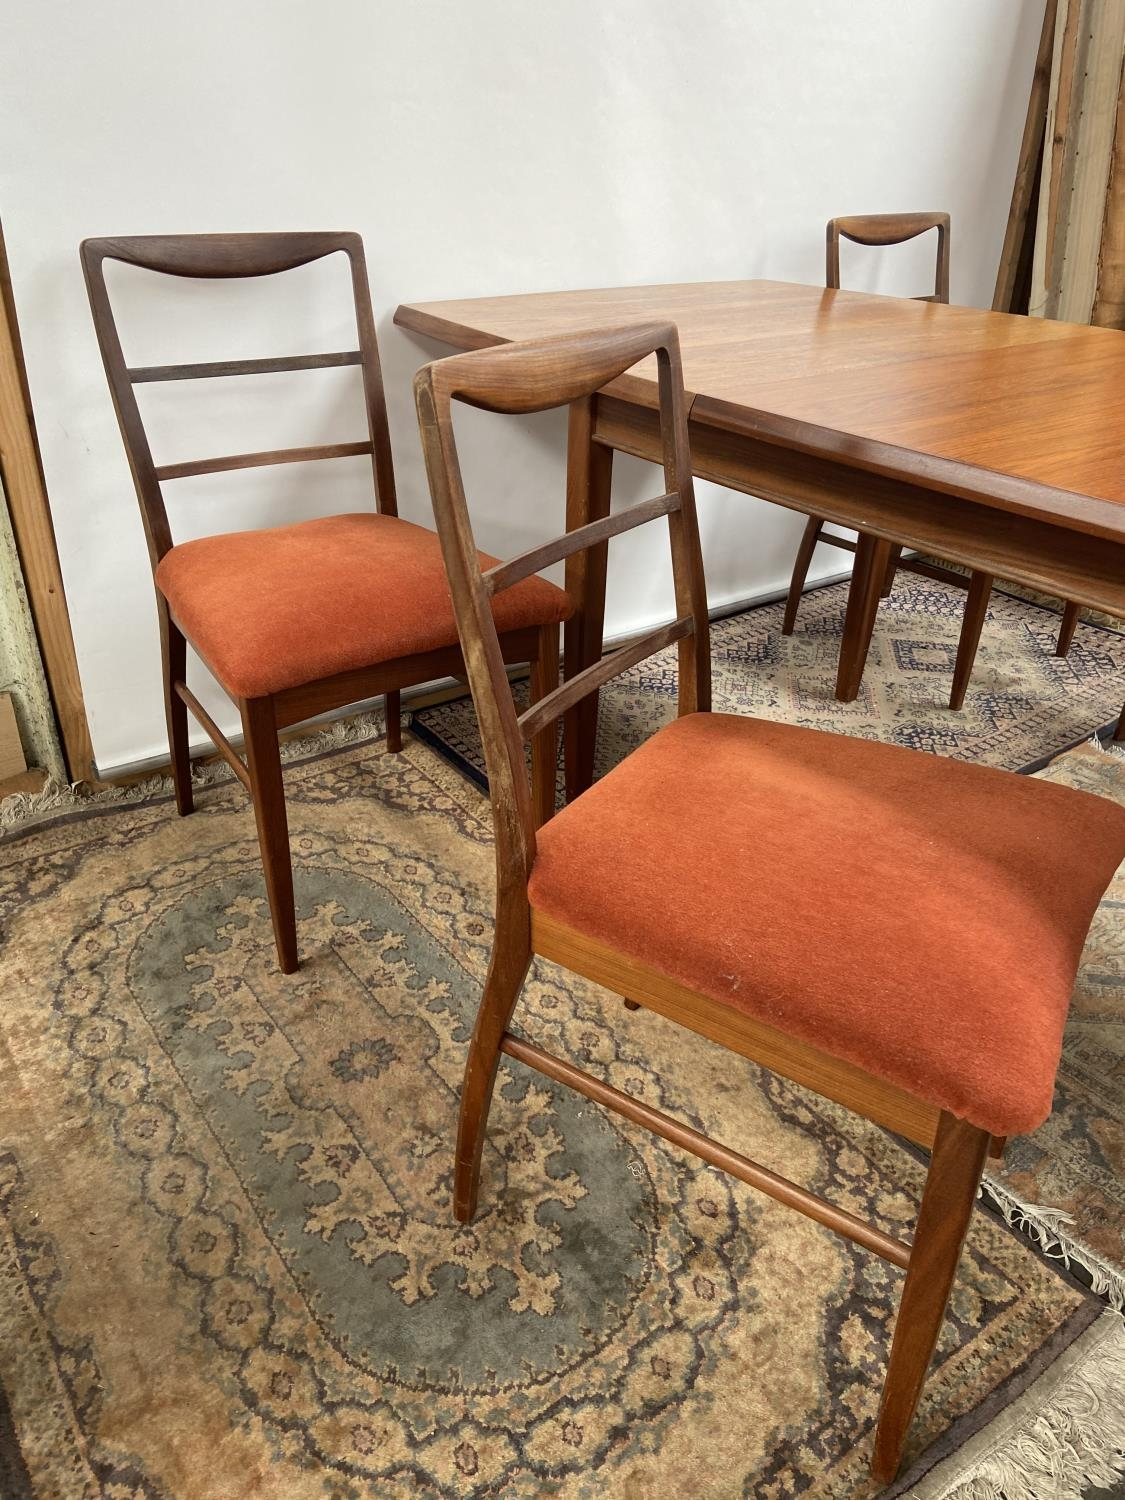 A Retro mid century teak dining table and four matching chairs produced by Vanson. [Table extended - Image 3 of 13